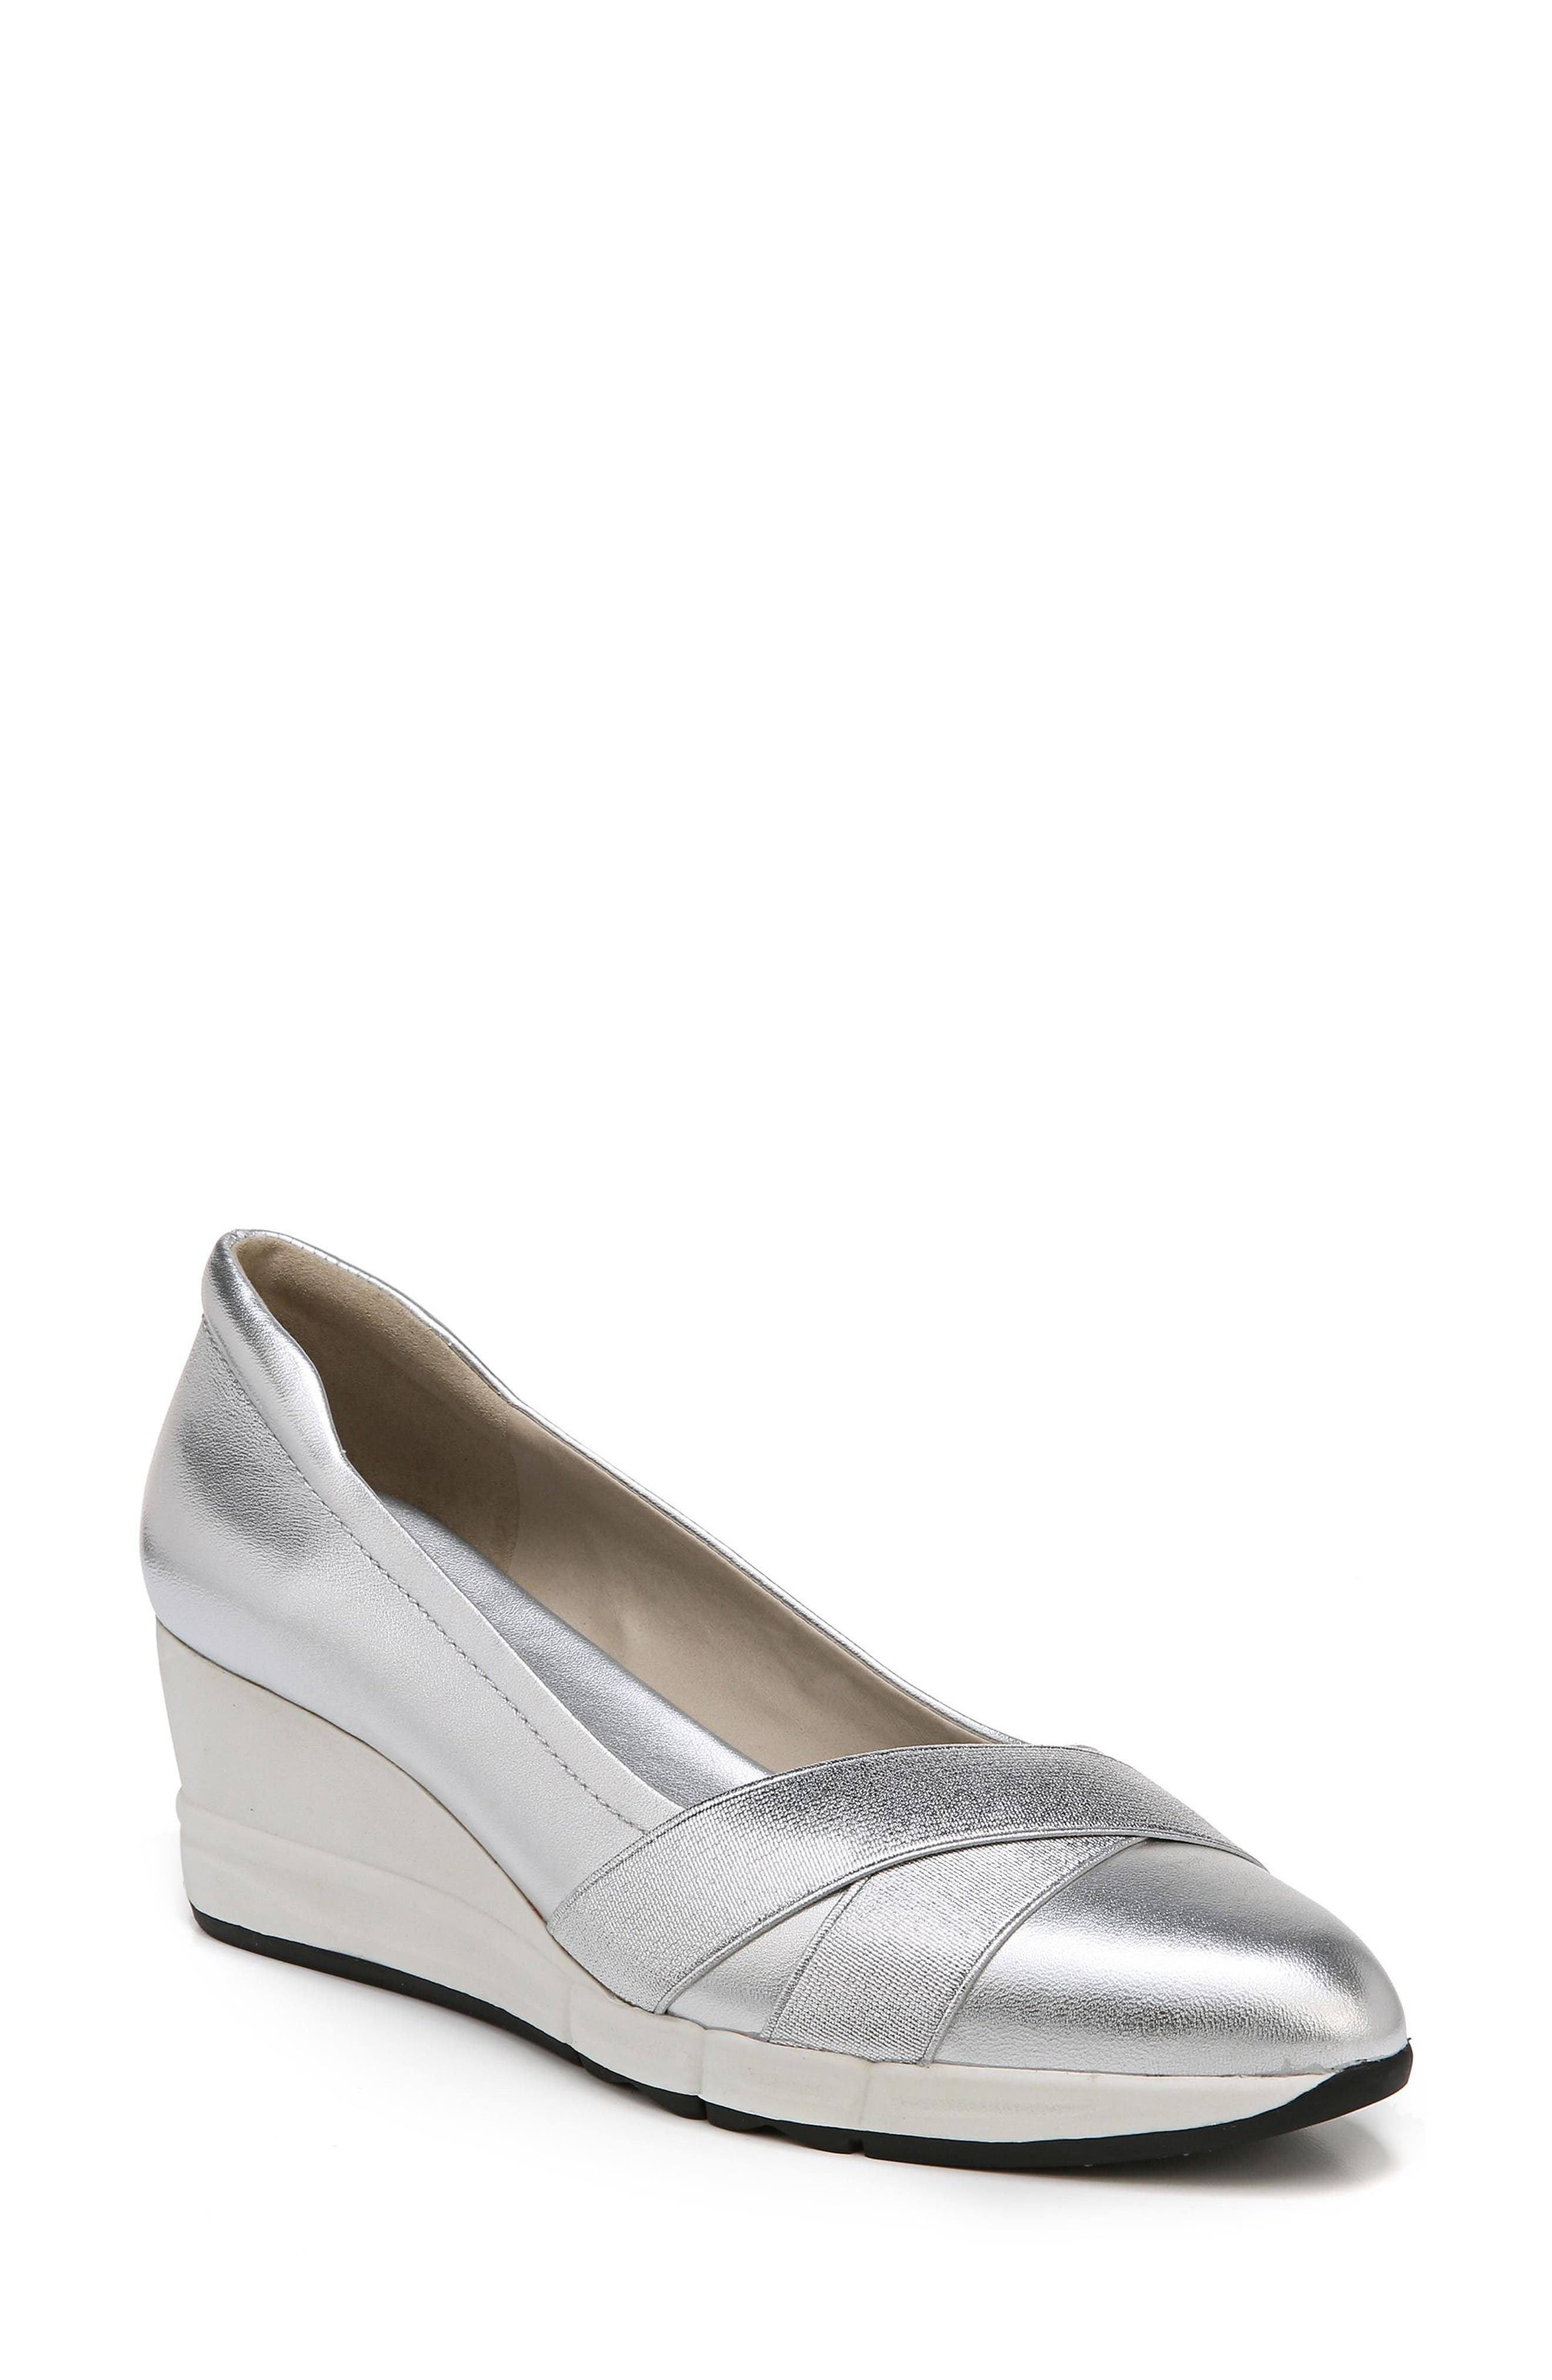 Harlyn Wedge Pump,                             Main thumbnail 1, color,                             Silver Leather